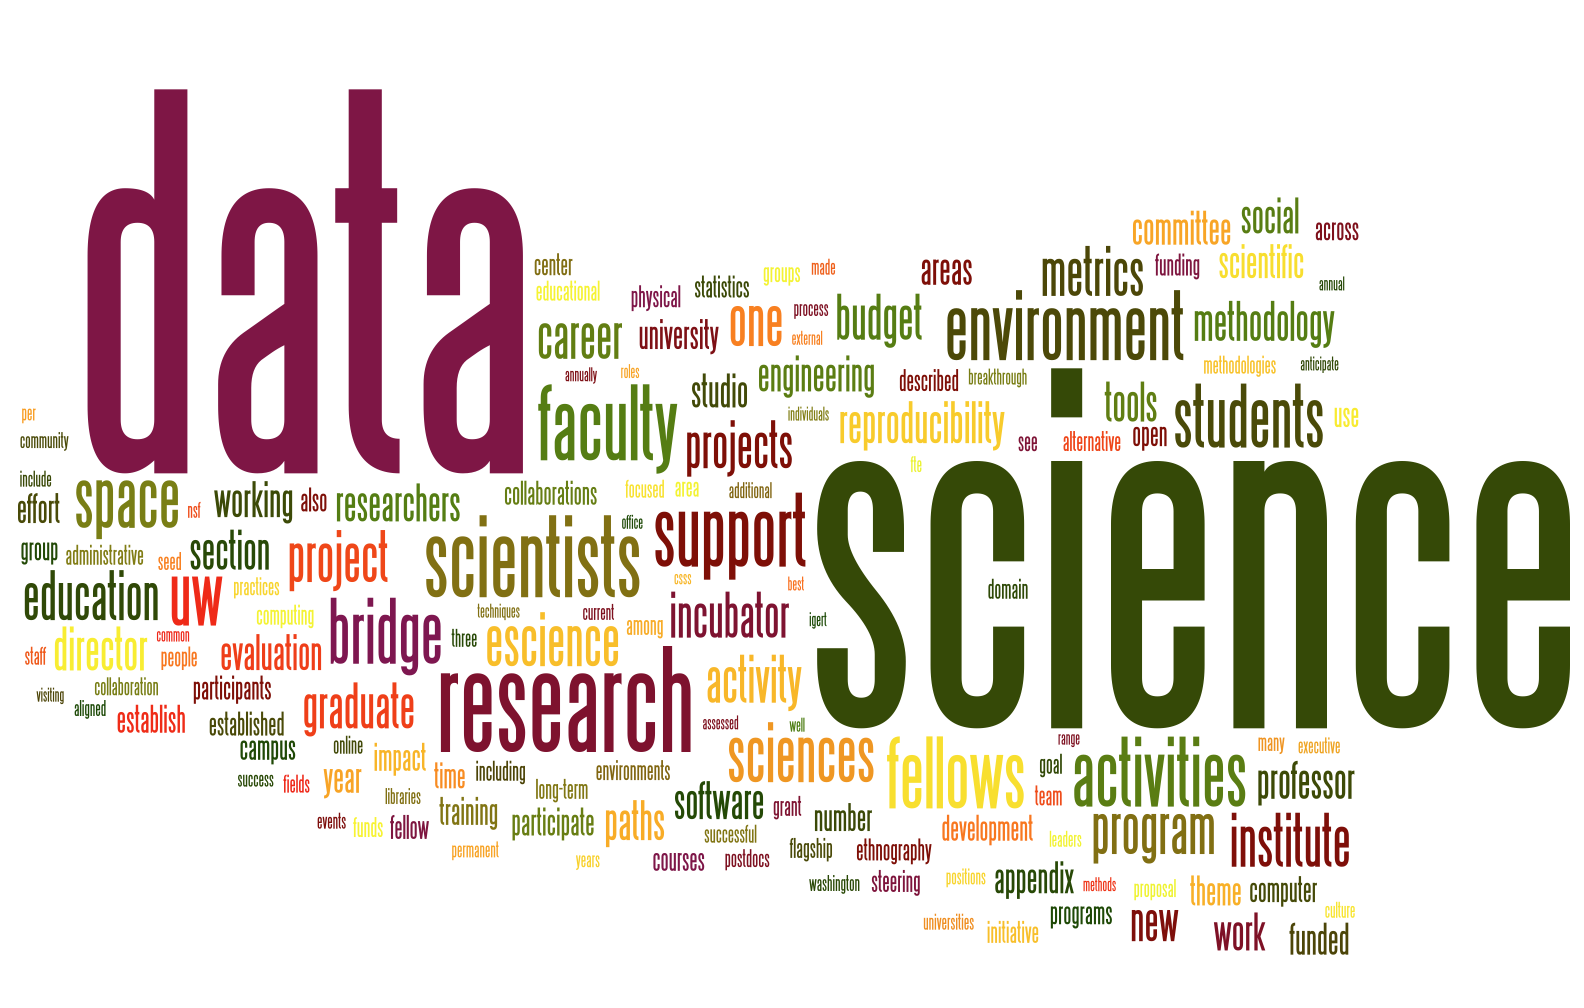 datasciencewordcloud